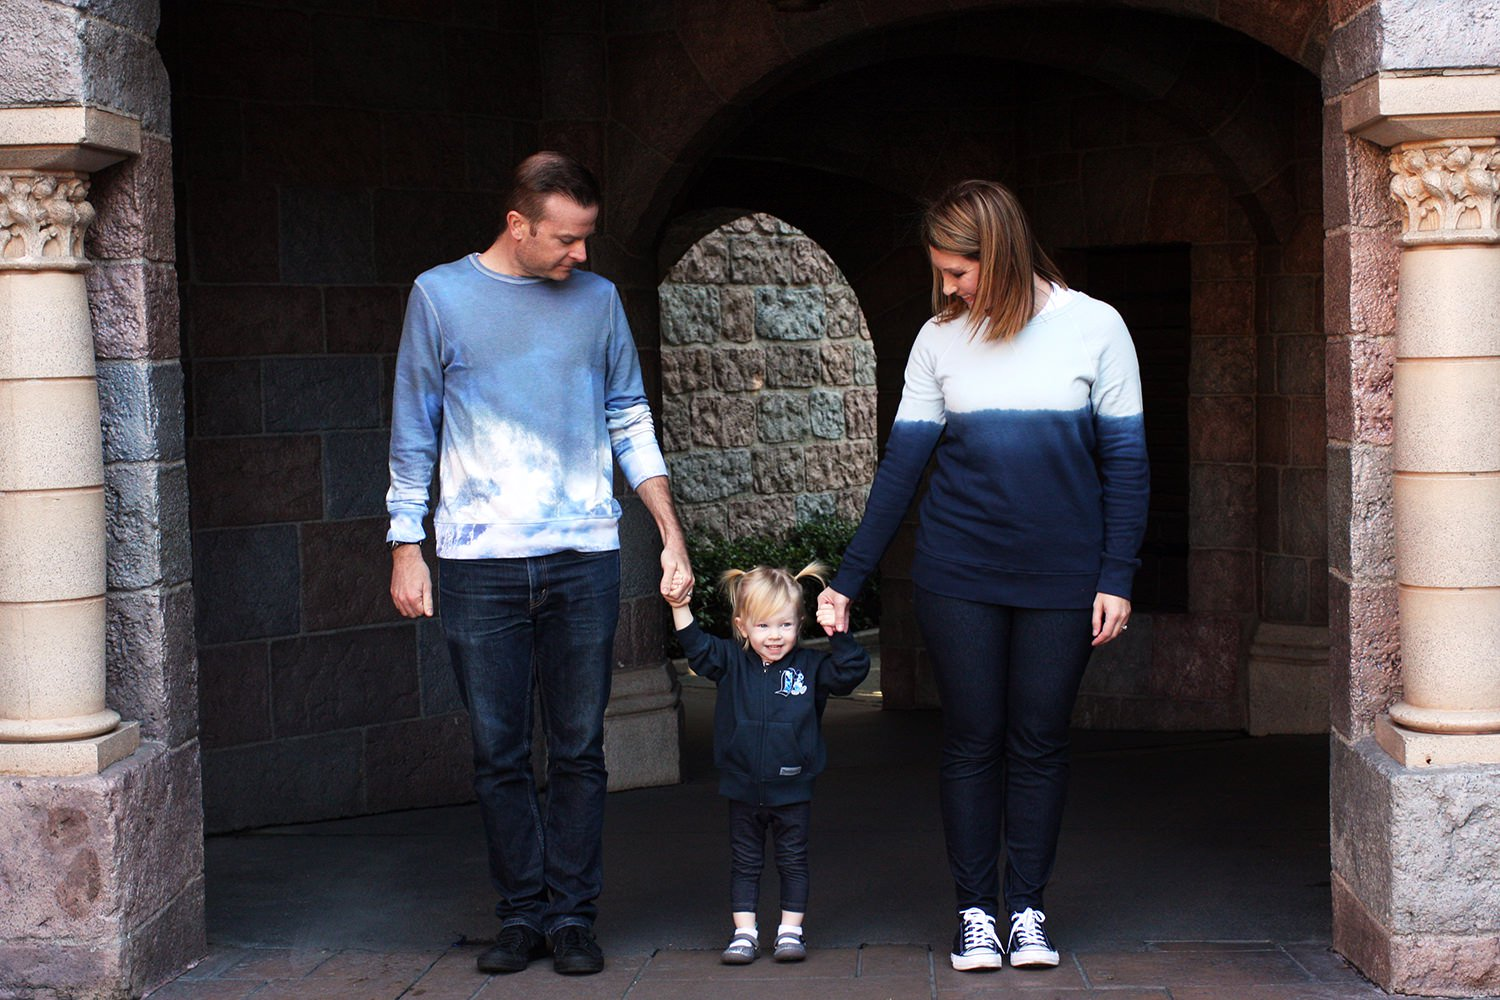 Looking for the perfect Disneyland outfits for winter? Pin this to remember what to wear to Disneyland in the cold!